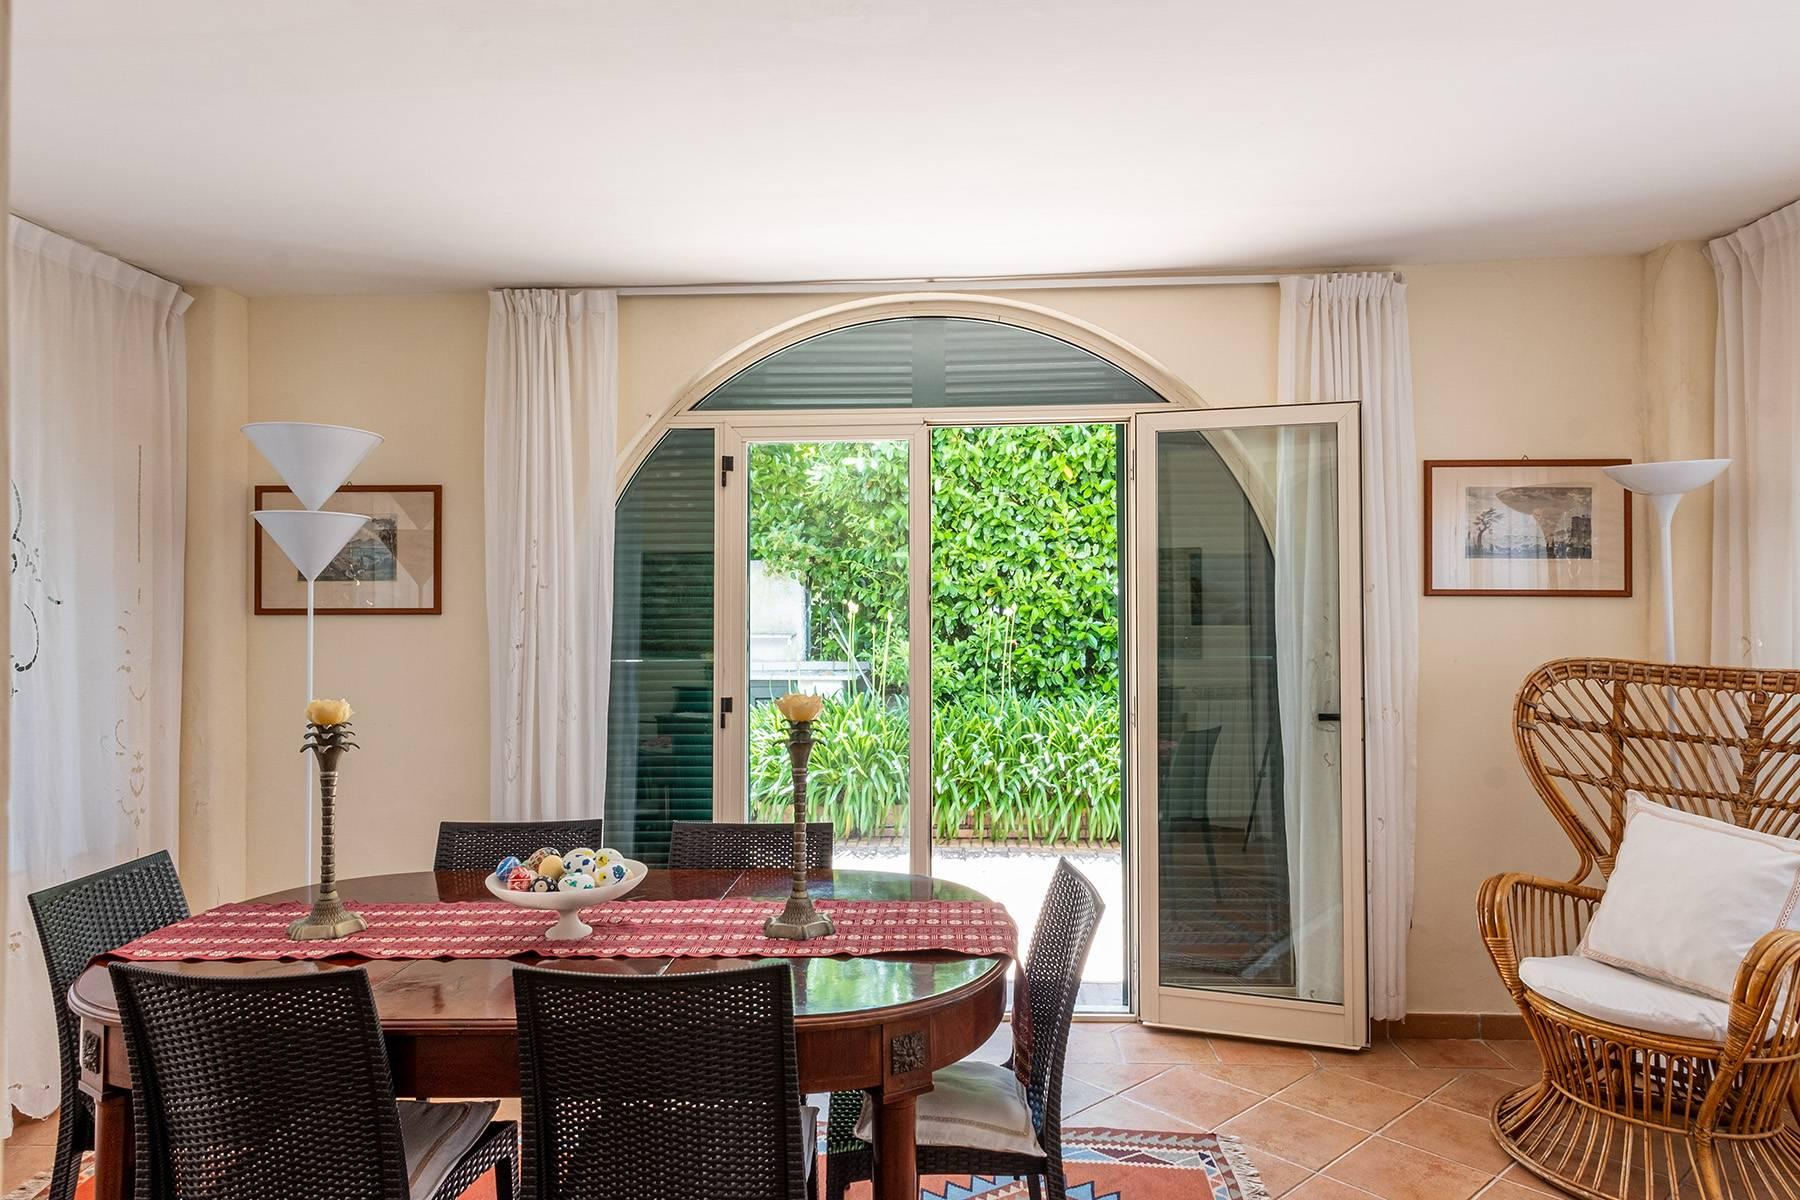 Charming villa with swimming pool in Anacapri - 10